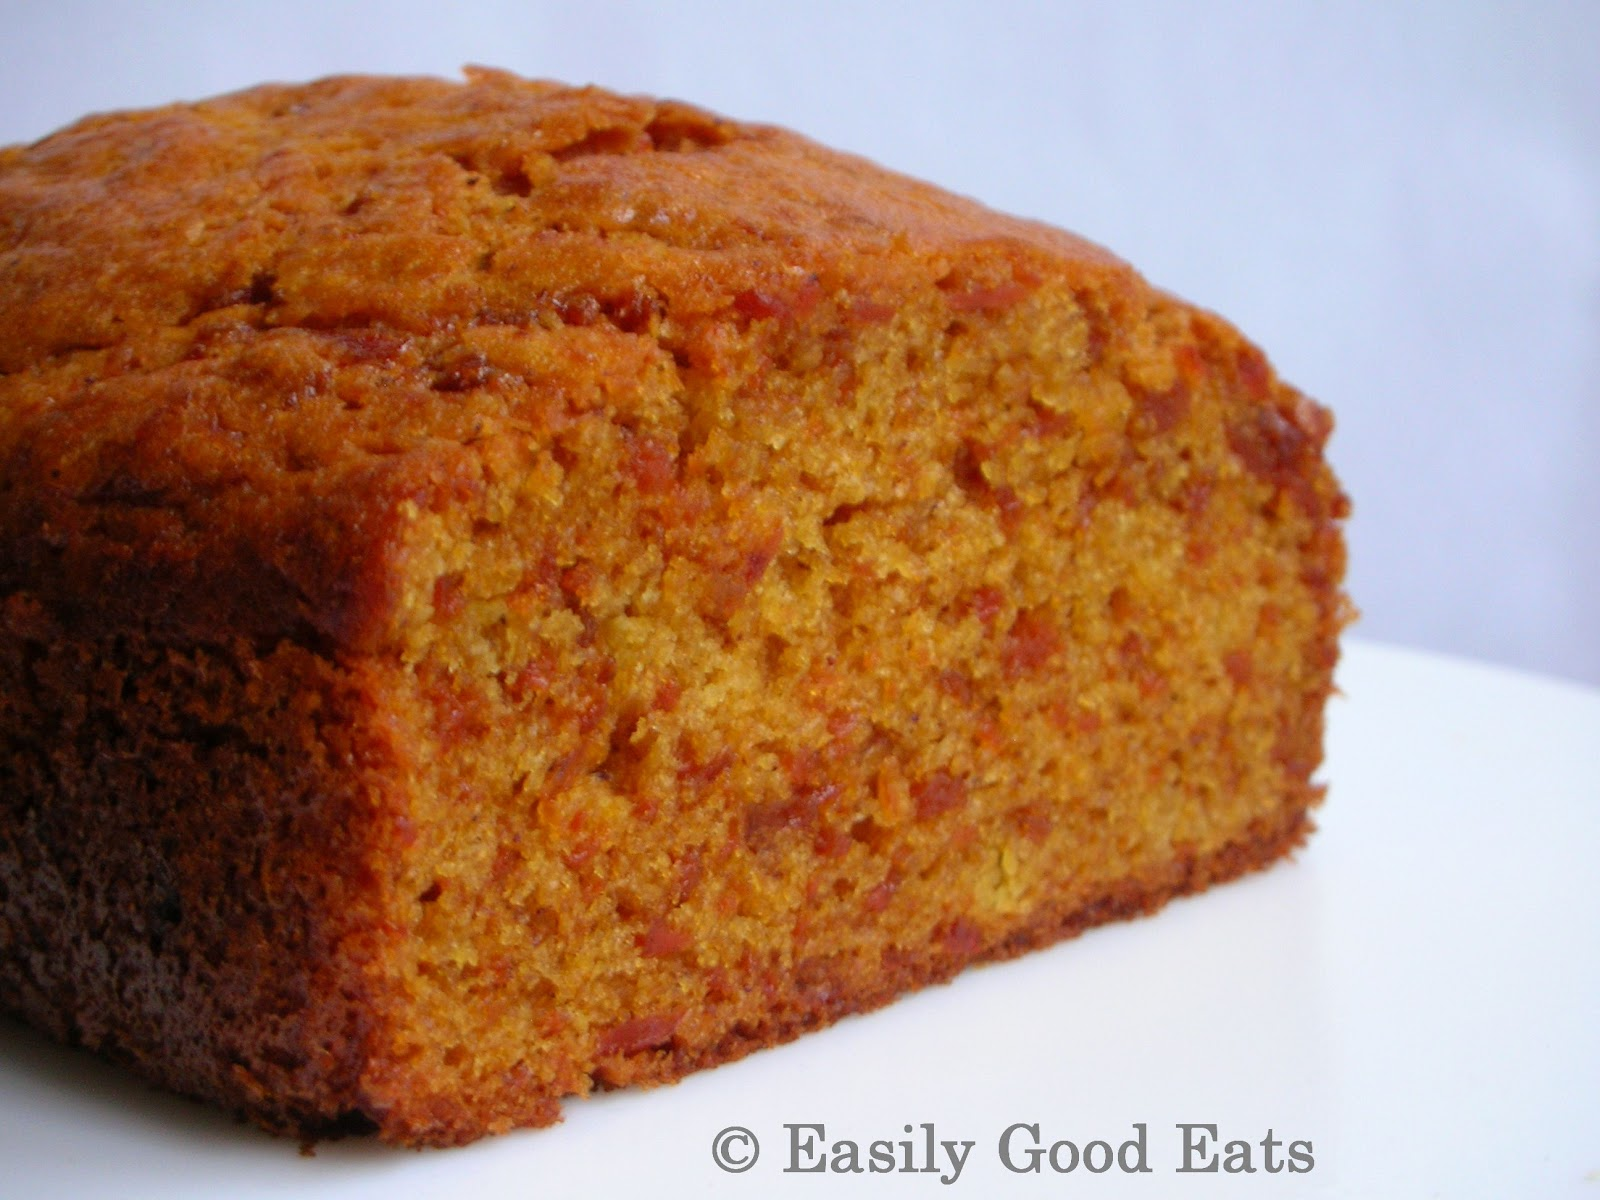 Easily Good Eats  Butterscotch  Caramelised  Carrot Cake Recipe Butterscotch  Caramelised  Carrot Cake